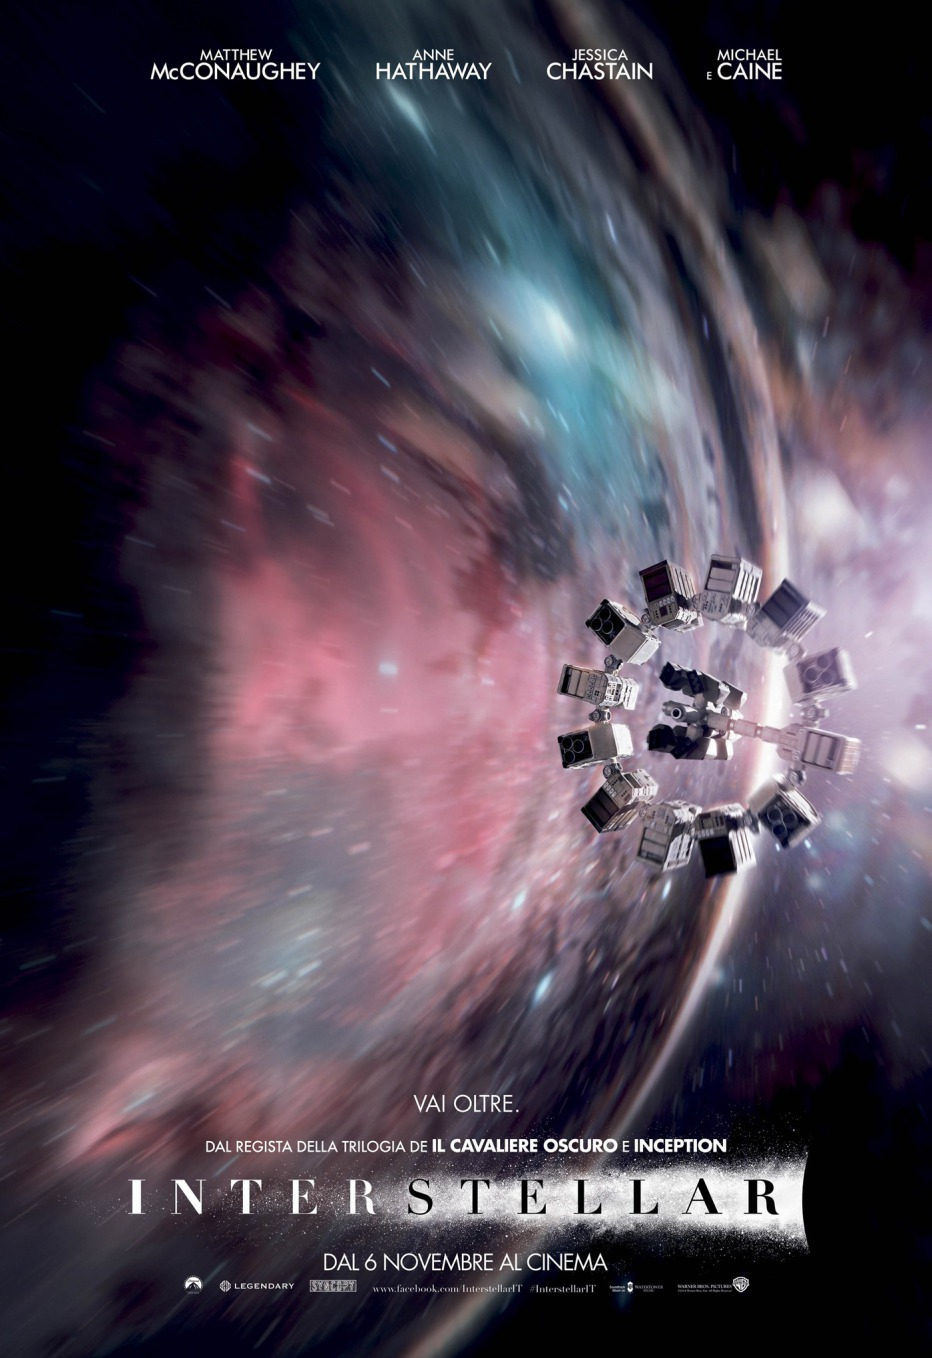 interstellar-2014-nolan-31.jpg